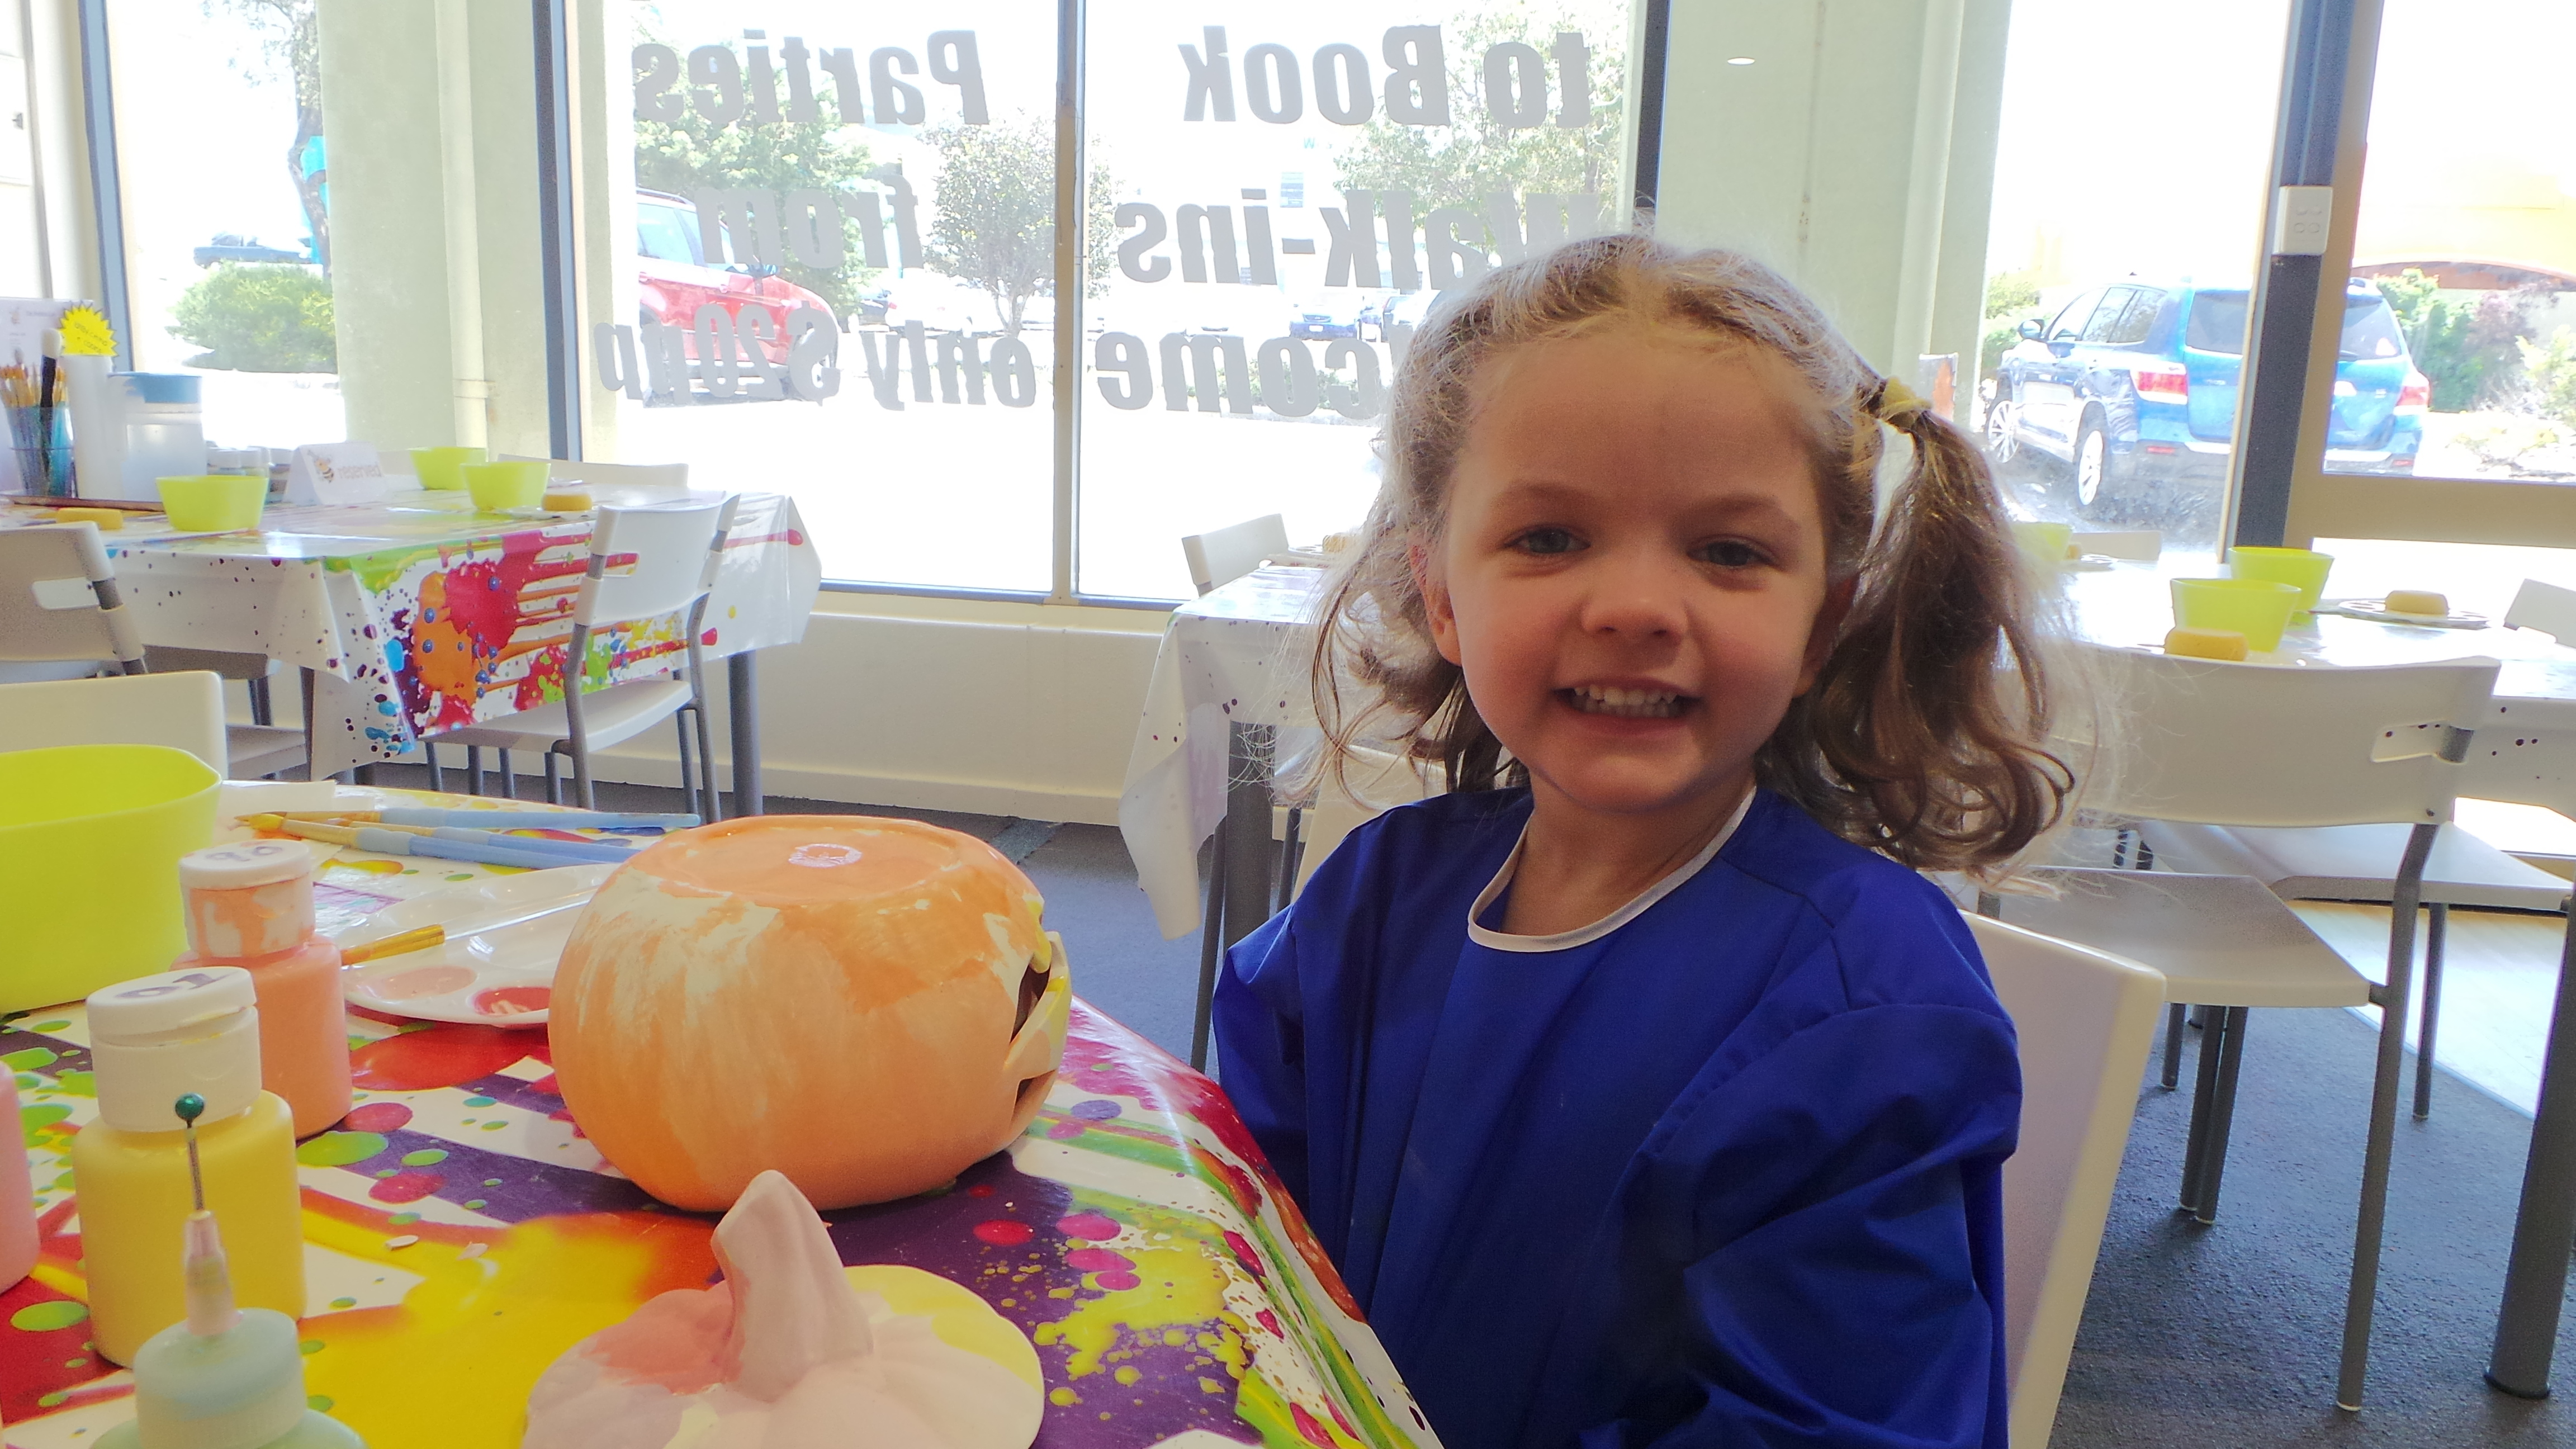 Kids Birthday Parties At The Pottery Playroom Perth - Children's birthday parties joondalup